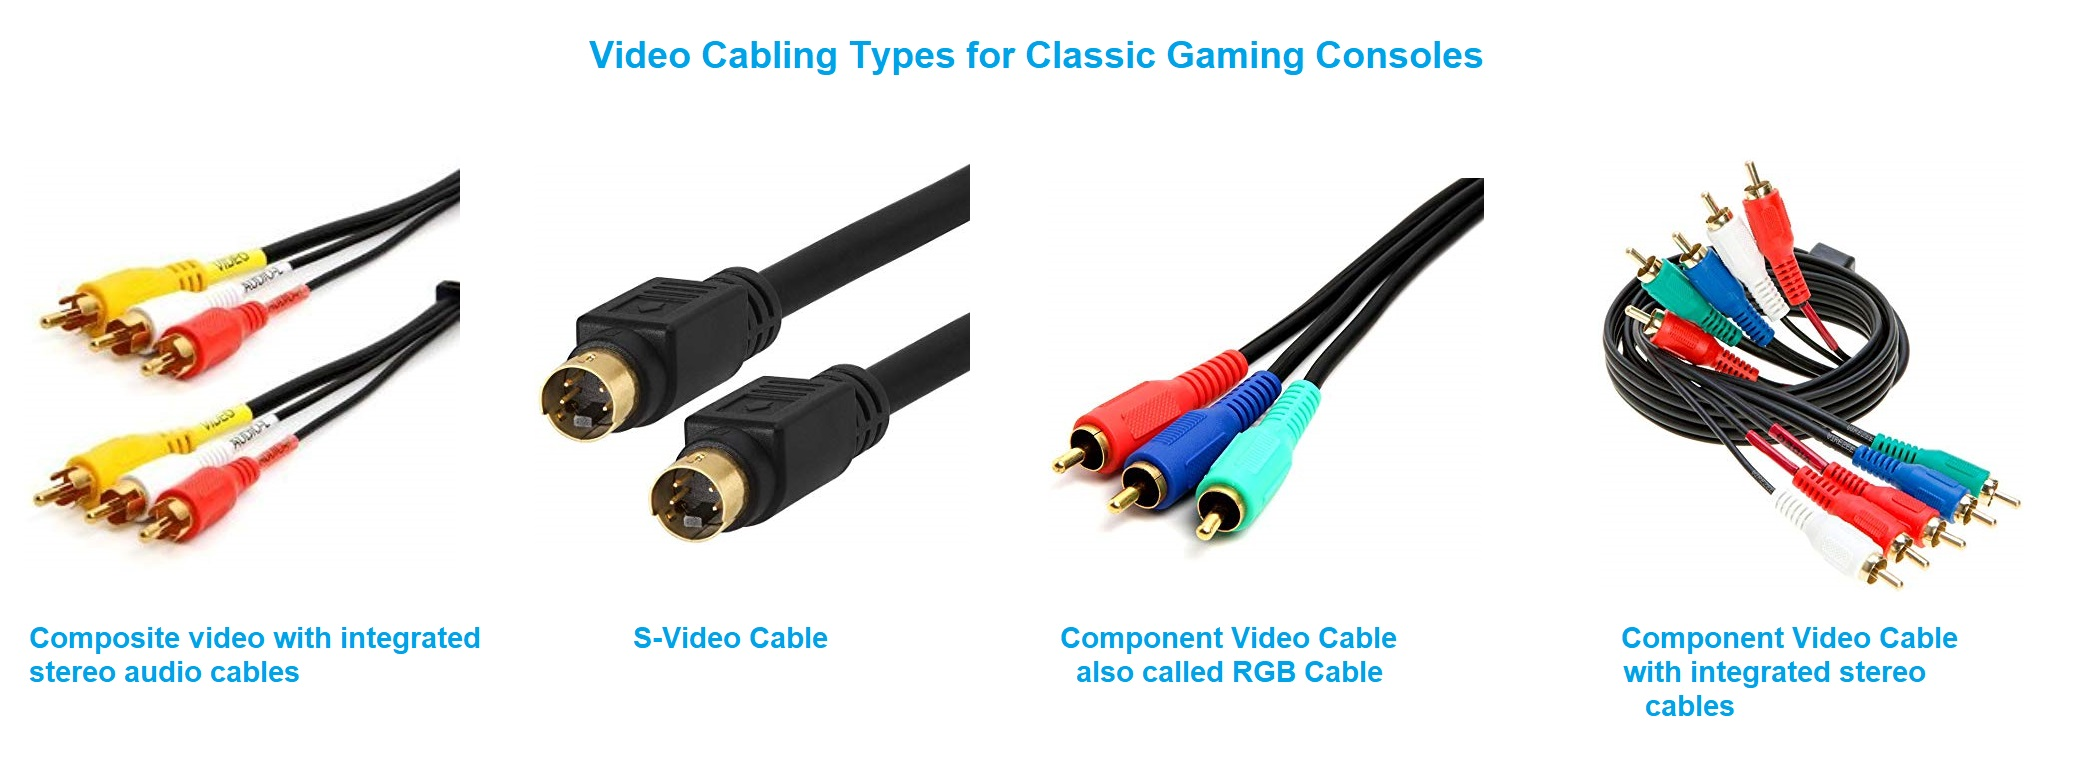 Video Cabling Types for Classic Gaming Consoles